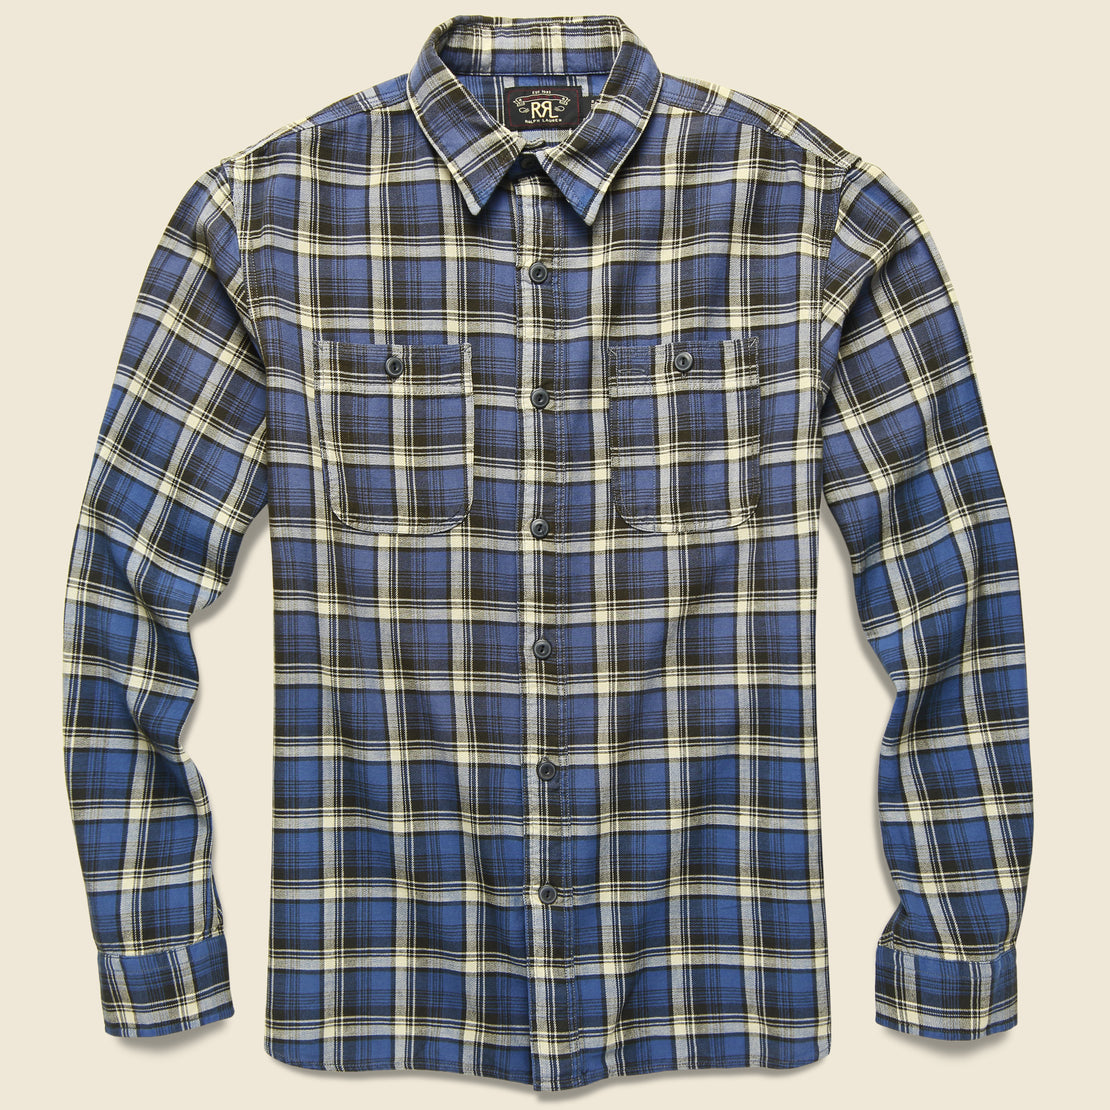 RRL Farrell Plaid Workshirt - Navy/Grey